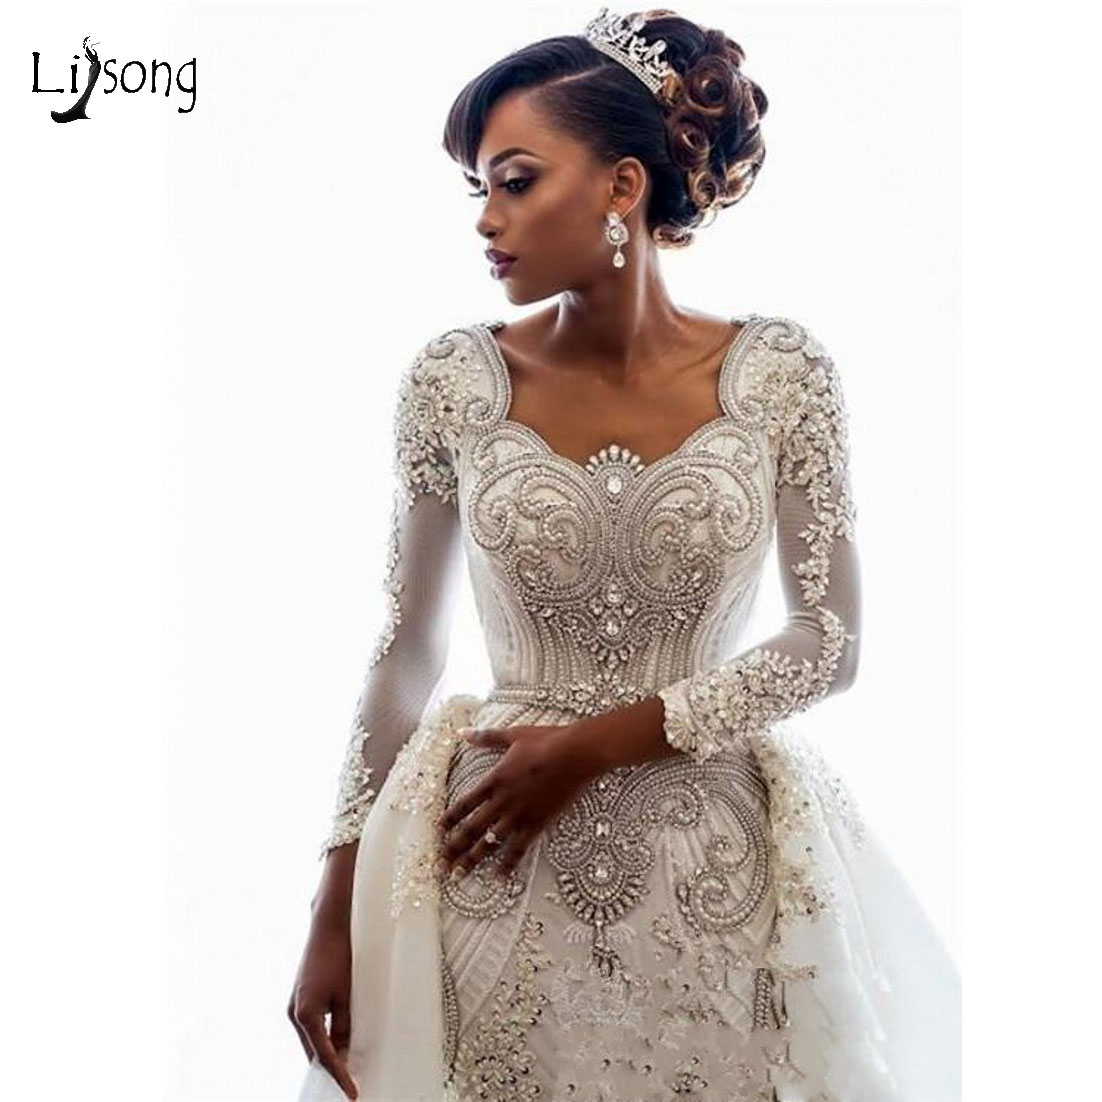 Luxury Gonna Shiny Crystal Wedding Dresses 2019 Full Sleeves Beaded Lace Bridal Gowns Detachable Train Robe De Mariee